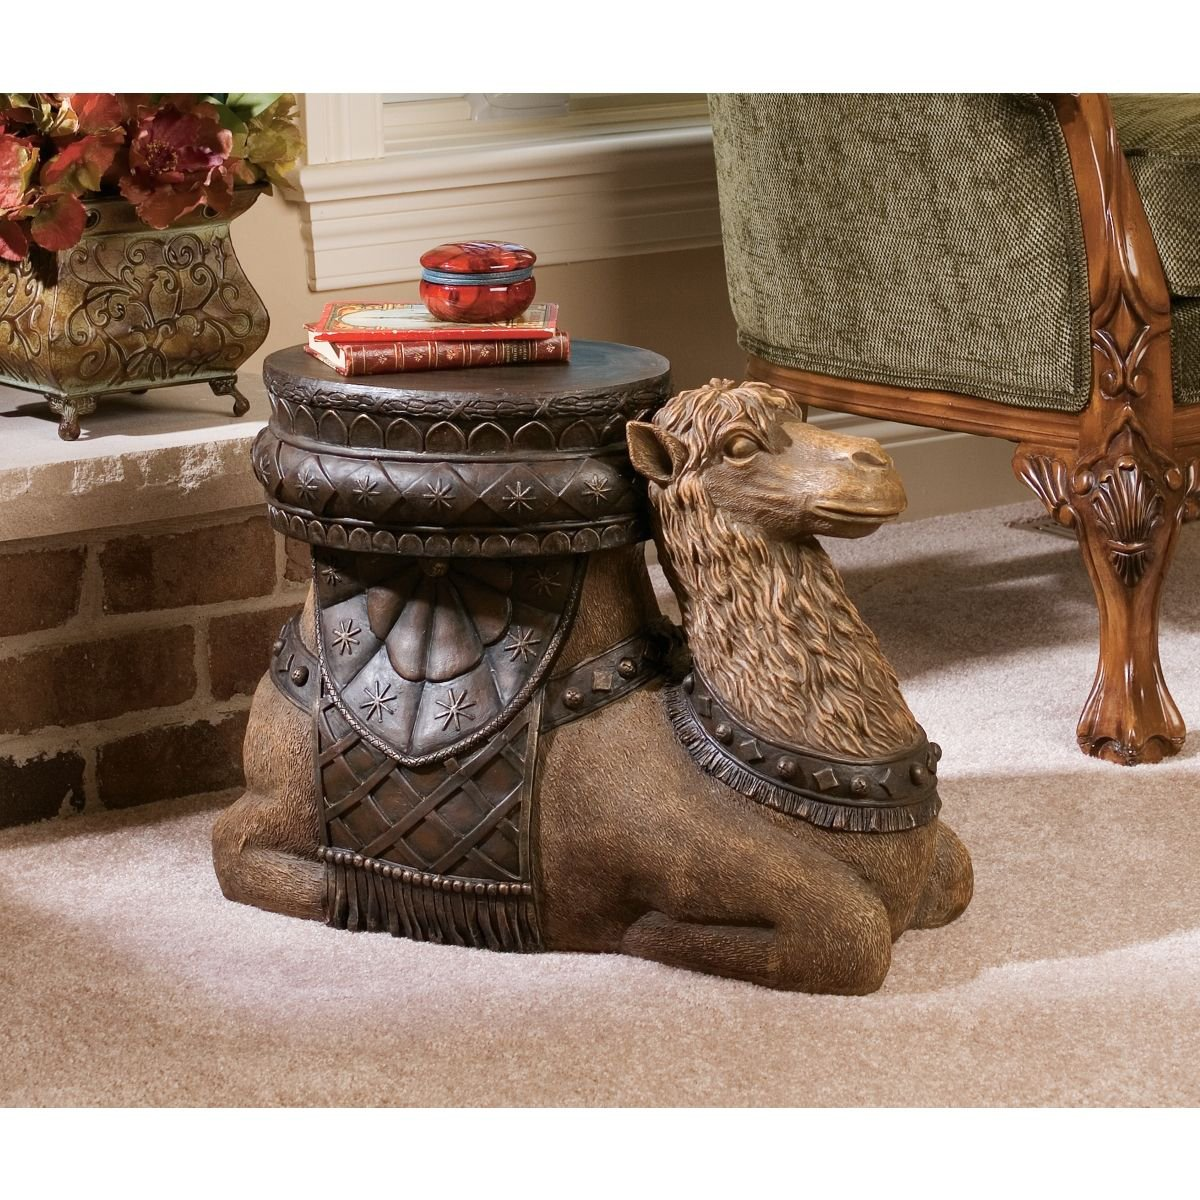 Amazon design toscano the kasbah camel sculptural end table amazon design toscano the kasbah camel sculptural end table kitchen dining geotapseo Image collections